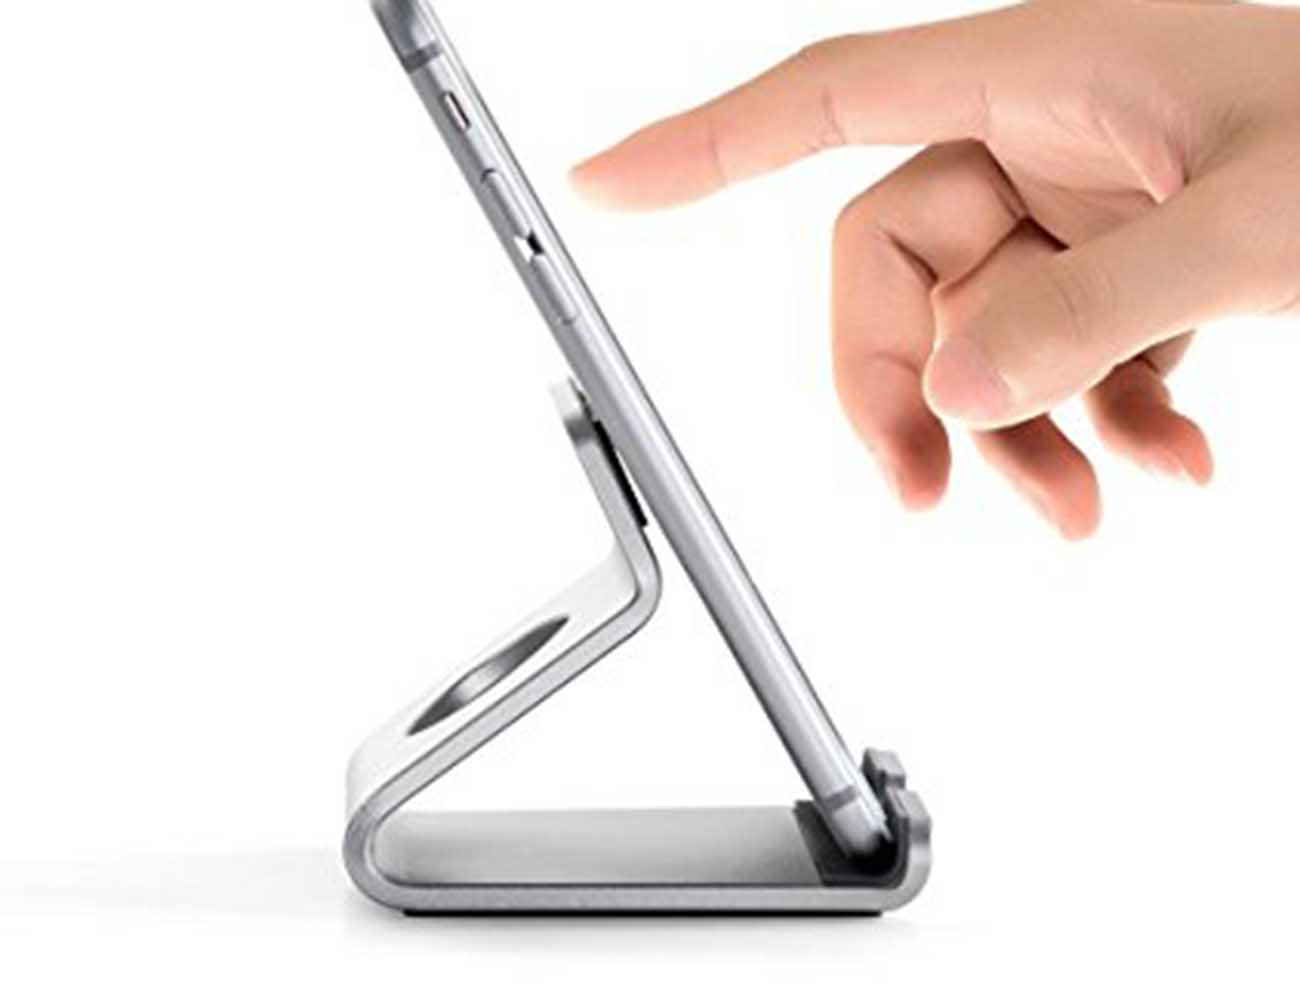 Minimalist+Aluminum+Micro-Suction+Stand+For+Your+Mobile+Devices